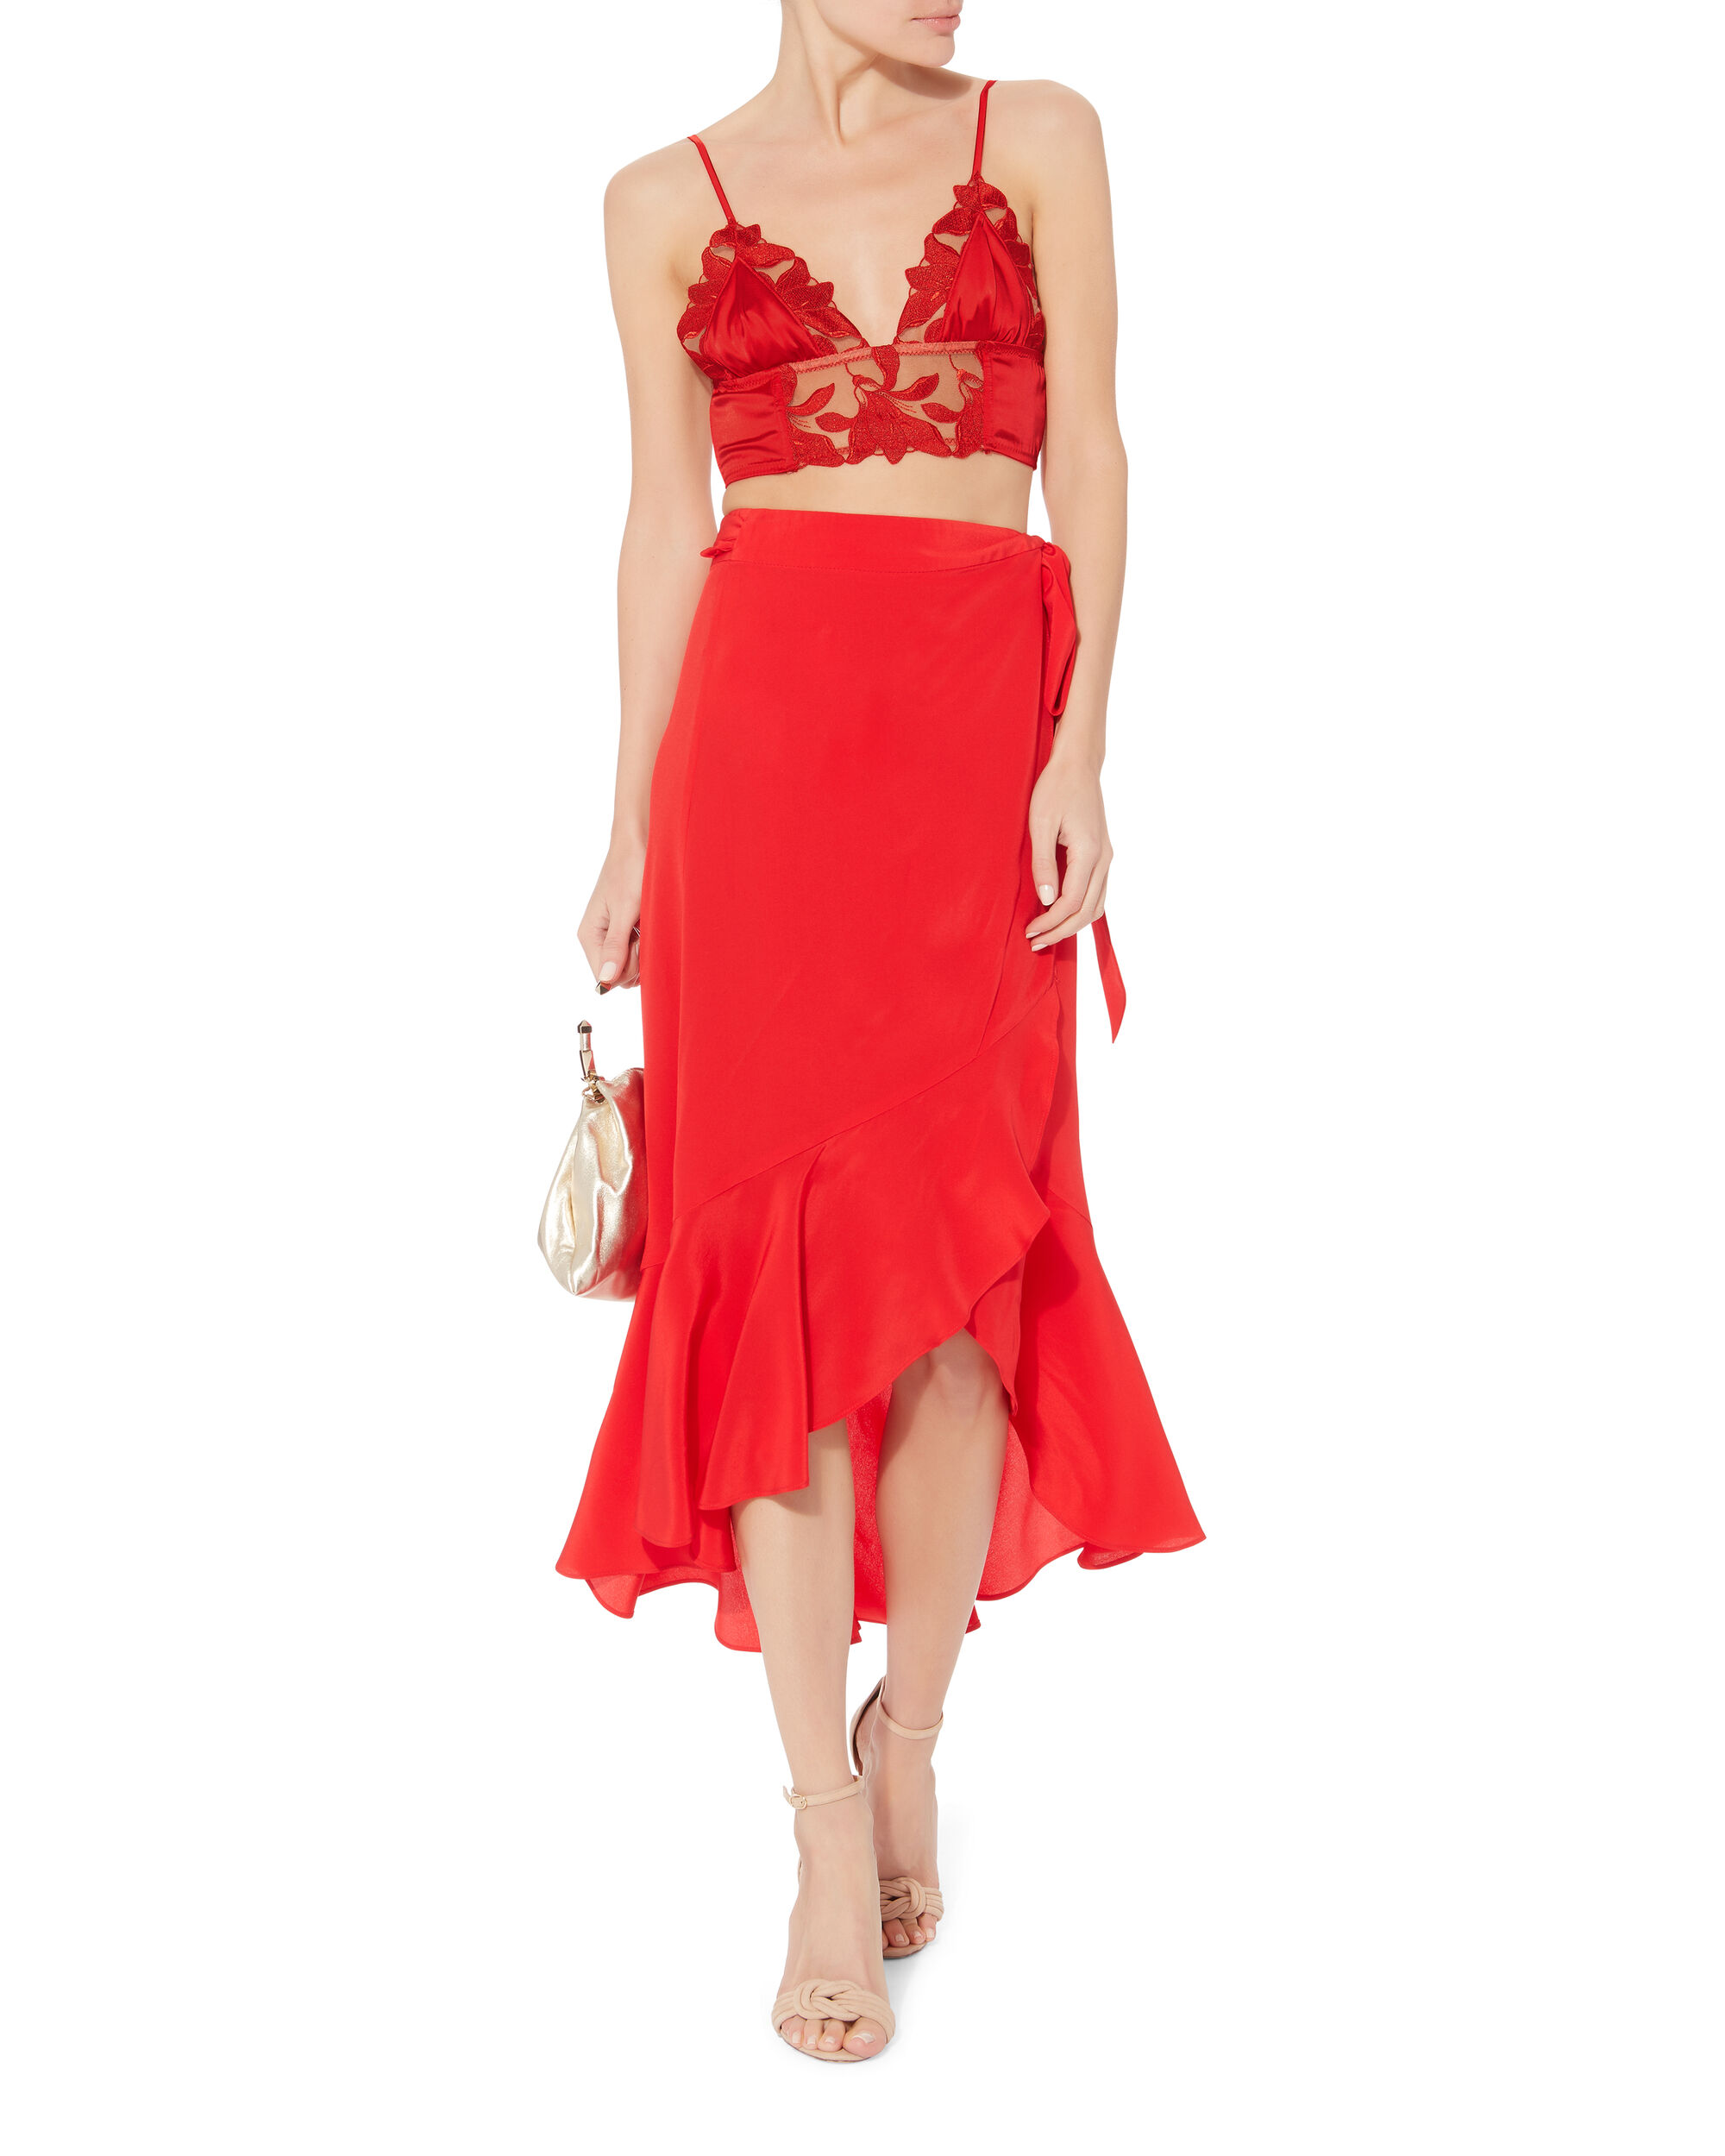 Lily Lace Long Line Red Bra, RED, hi-res